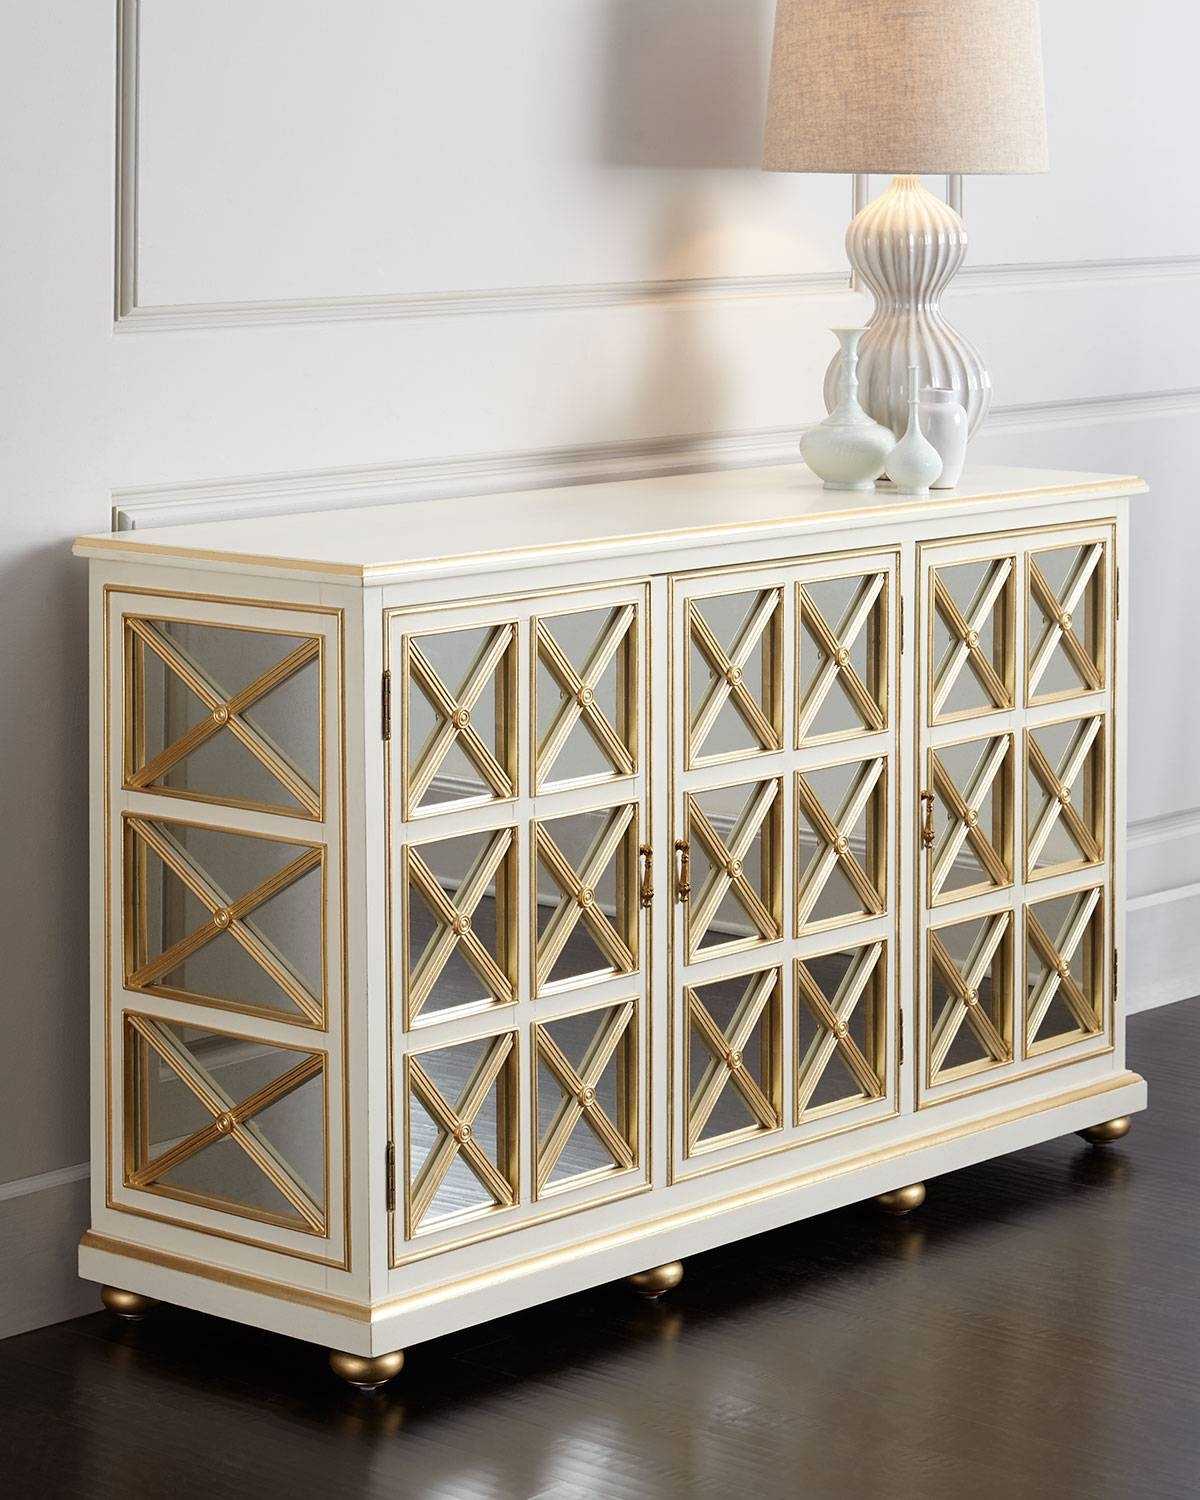 Neiman Marcus Mirrored Furniture – Harpsounds.co throughout White Mirrored Sideboards (Image 14 of 30)